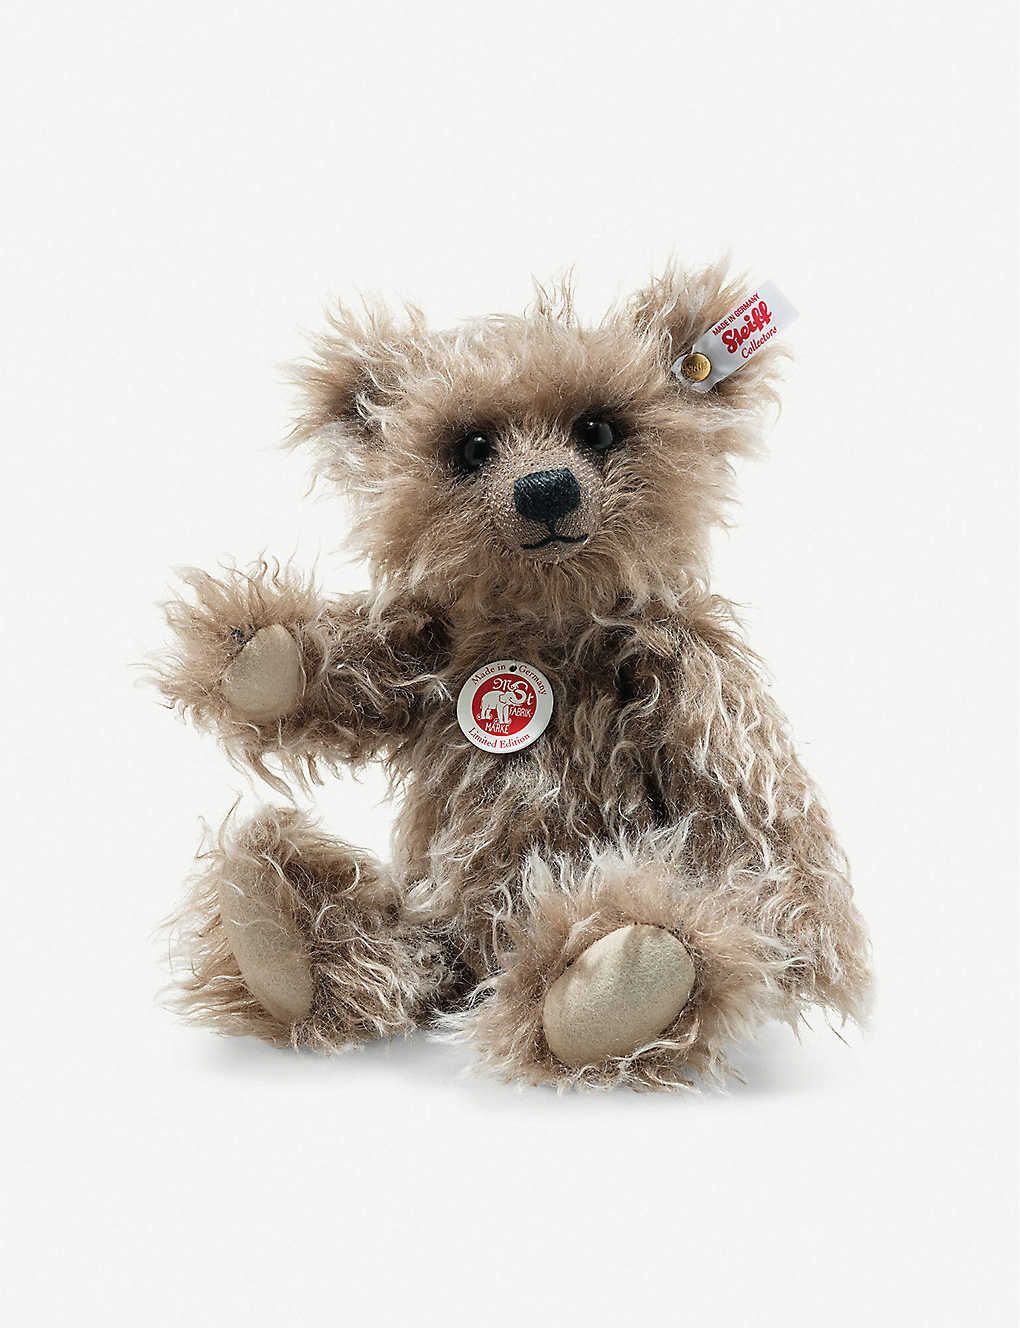 STEIFF: Grizzly ted cub teddy bear 28cm